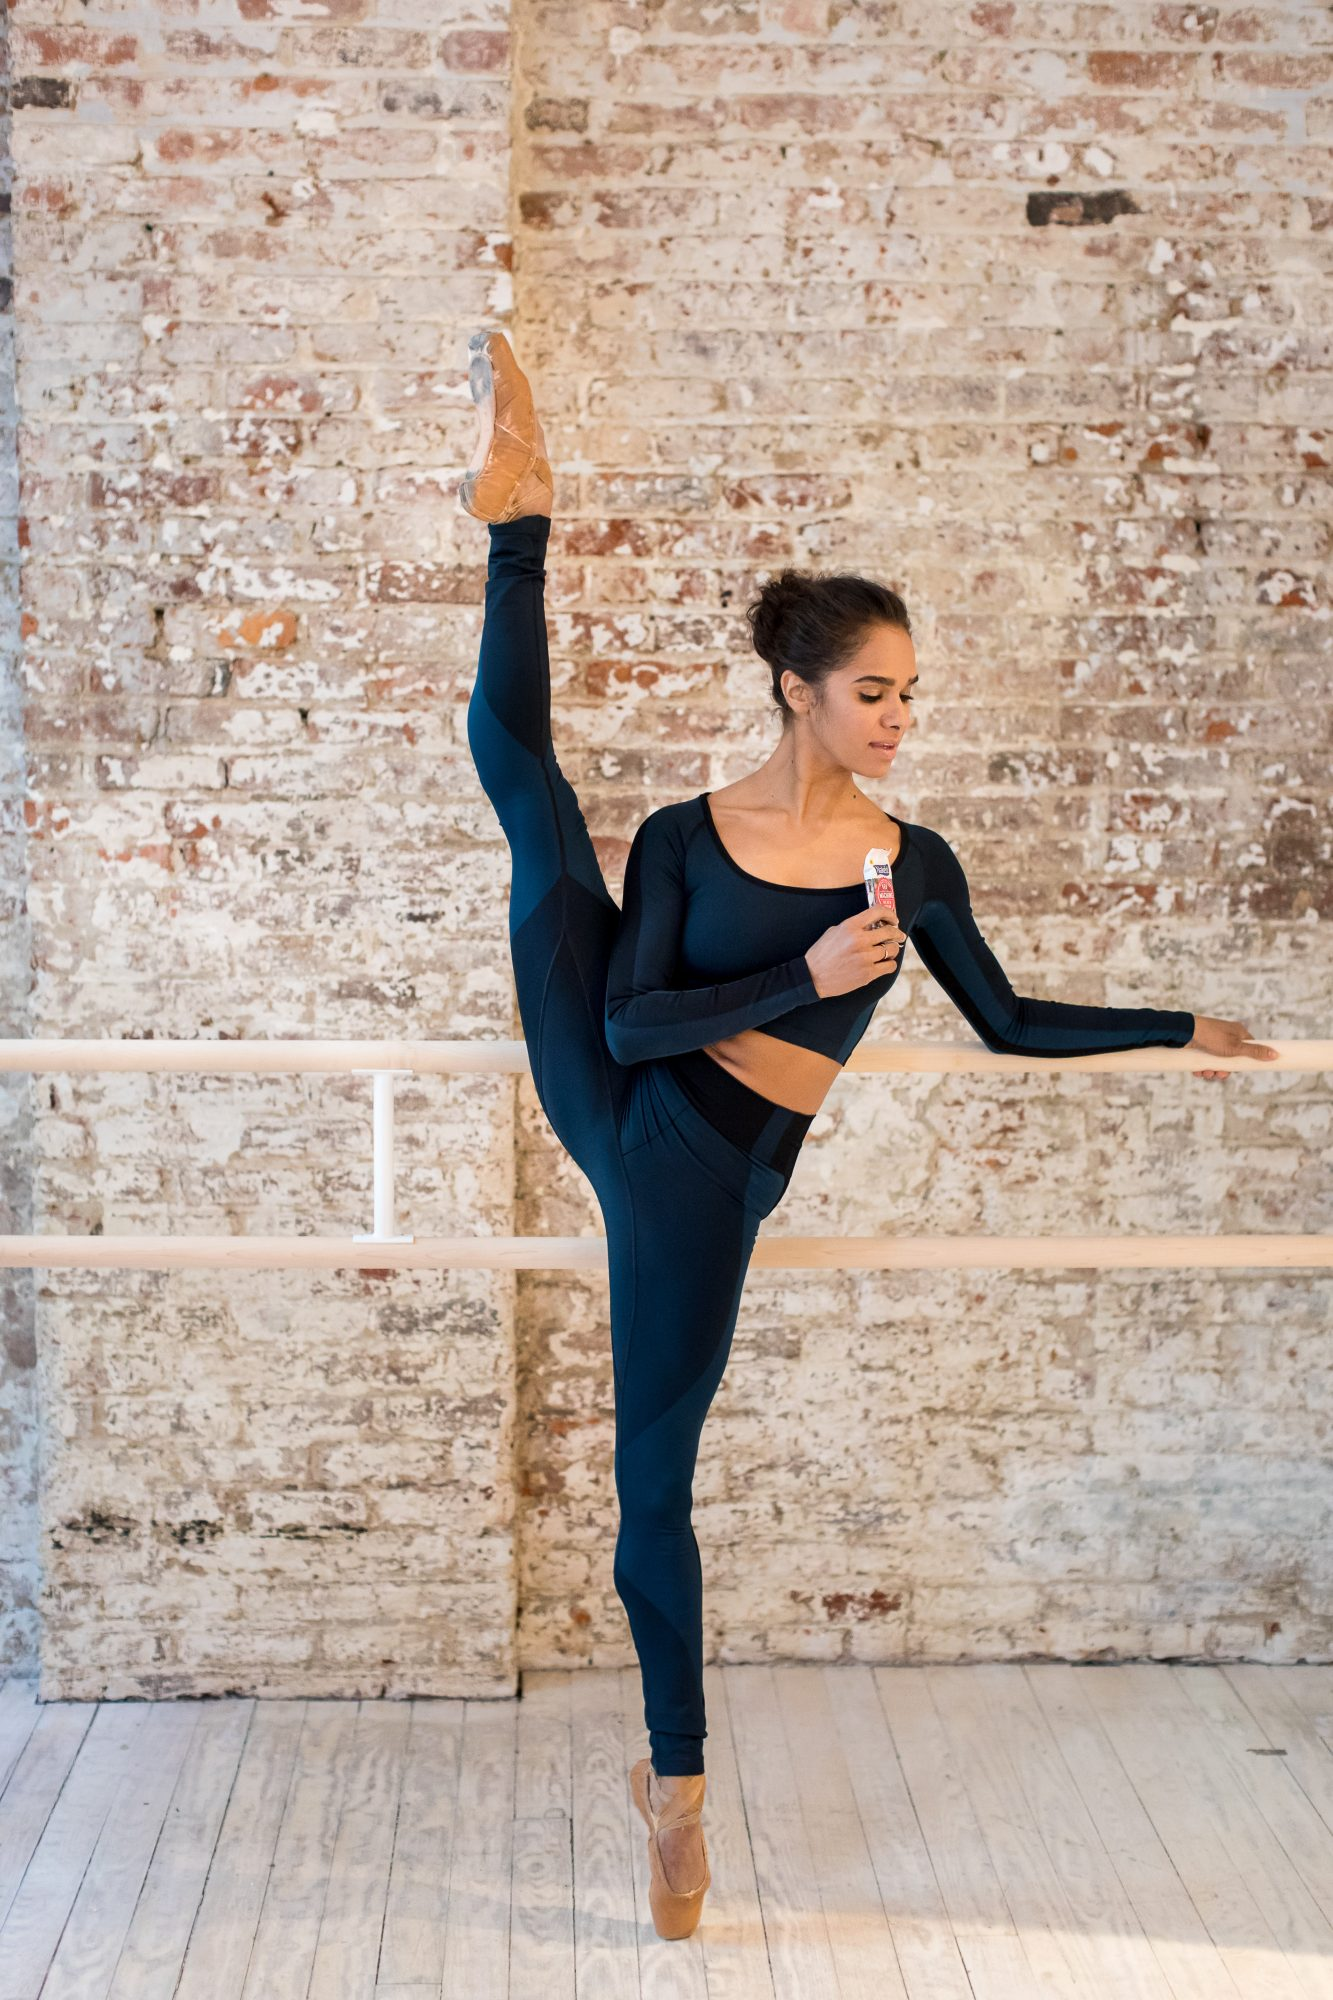 Misty Copeland Dancing